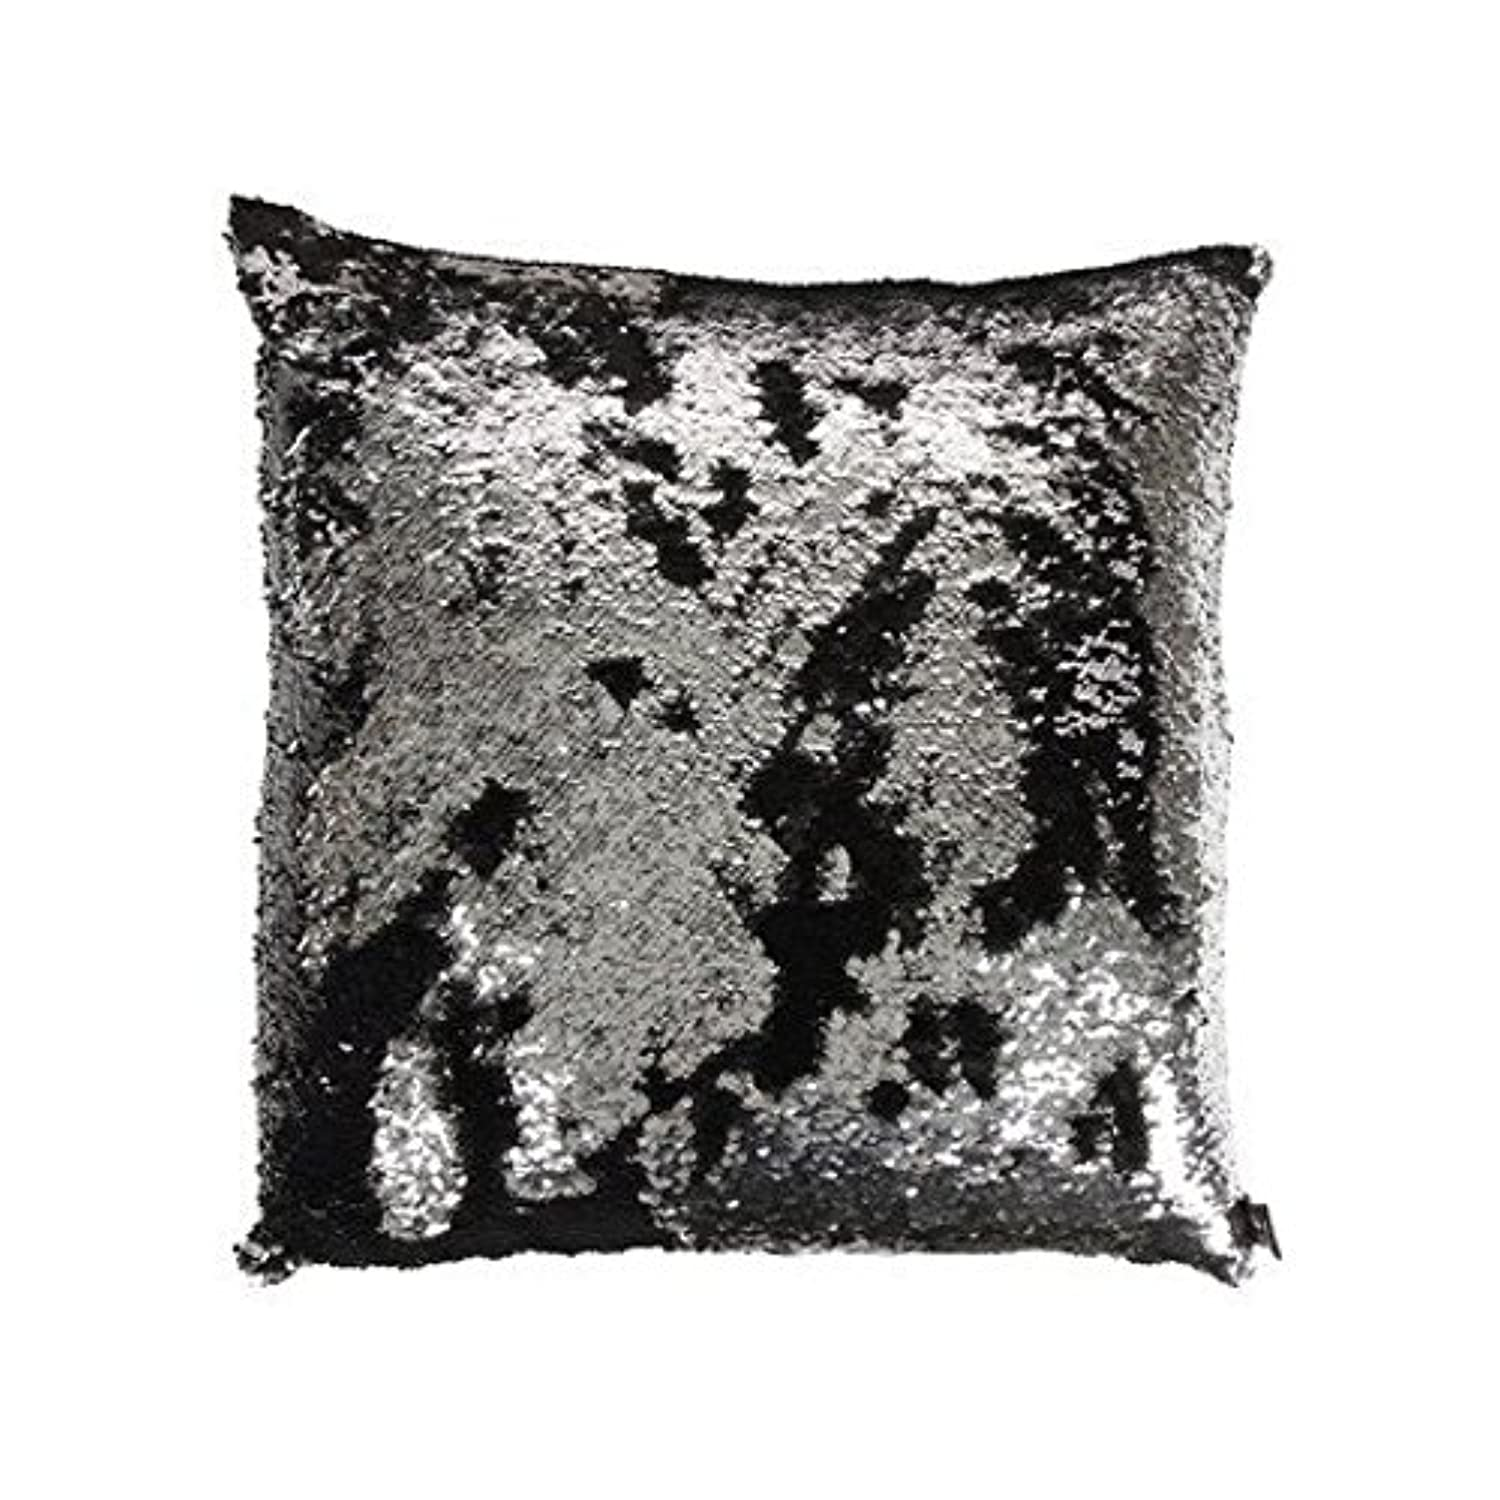 [ねとらぼ Pillowcover]Netlab-Pillowcover 18 Inch Doubleface Two Tone Sequins Mermaid Europe Luxurious Pillow Cover [並行輸入品]